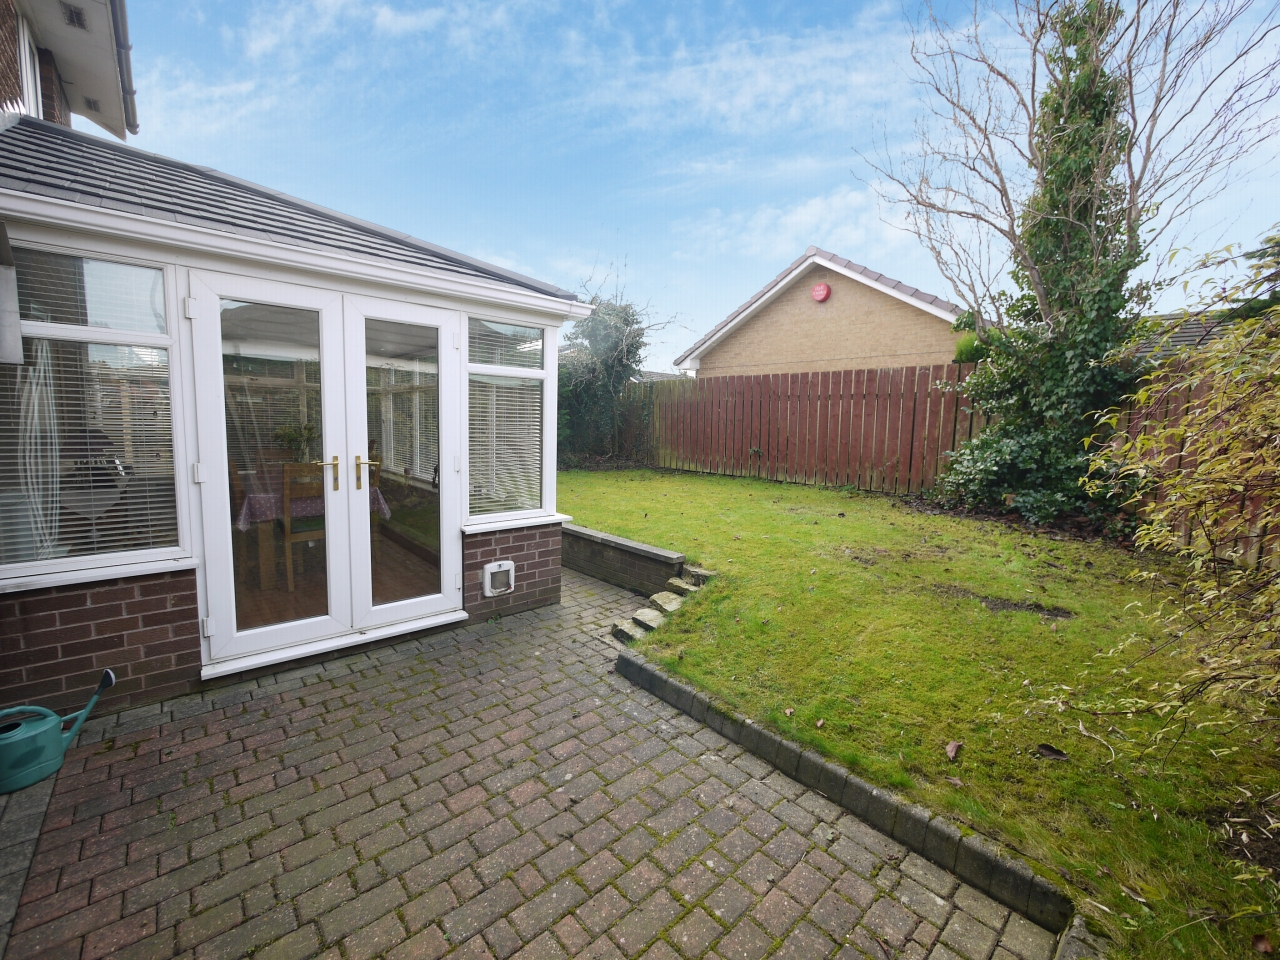 4 bedroom detached house SSTC in Brighouse - Photograph 18.